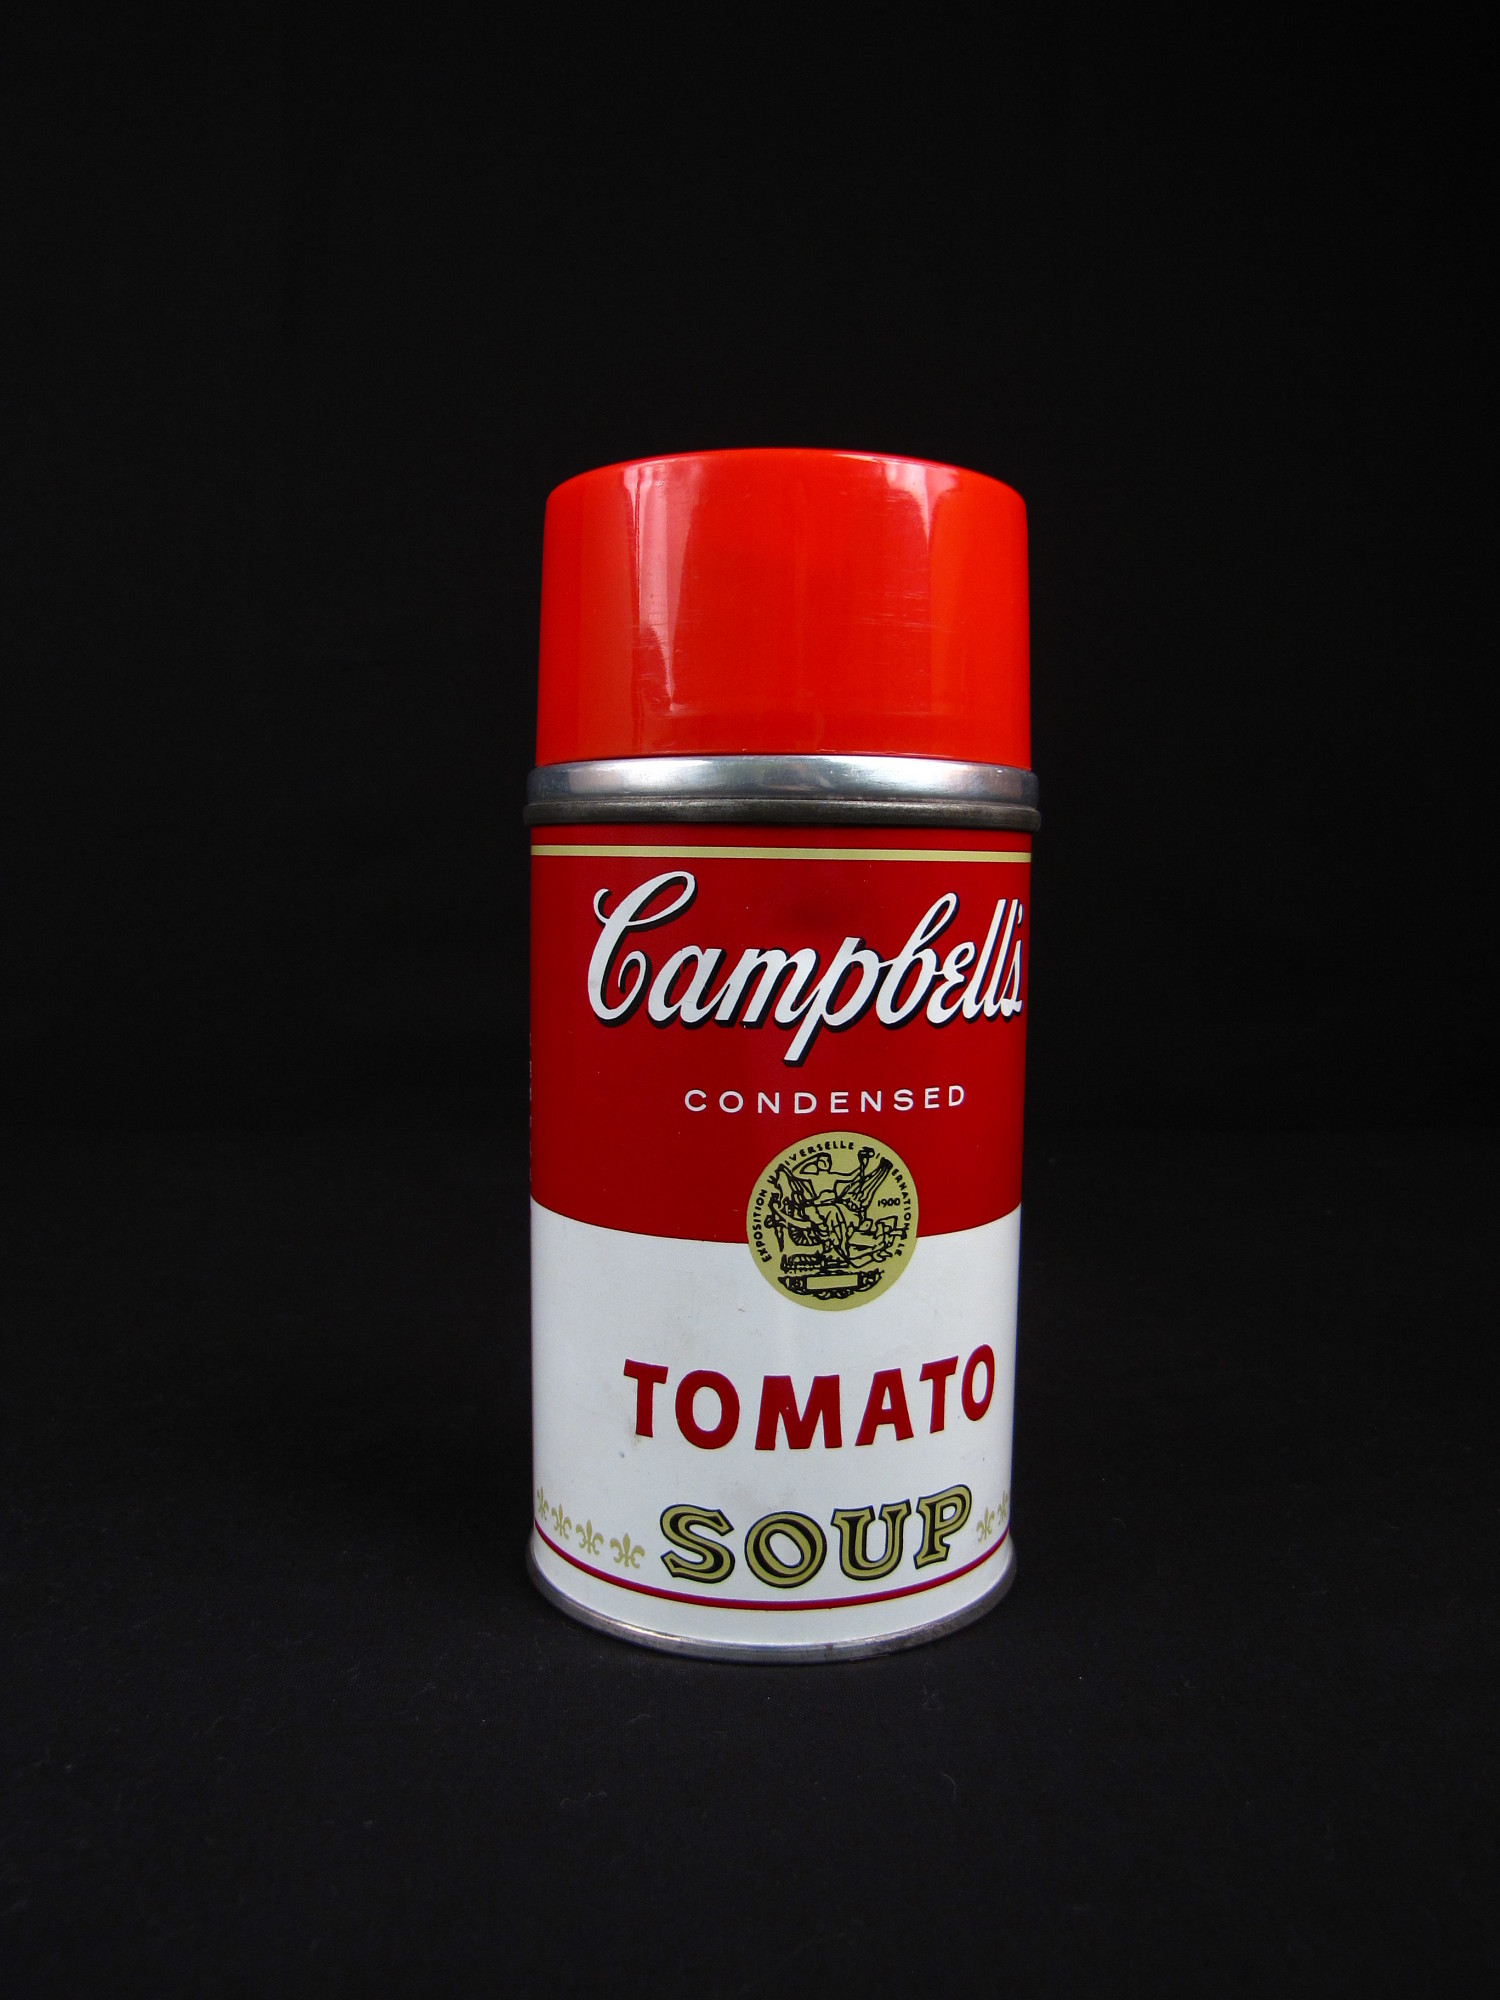 images for Campbell's Tomato Soup Thermos